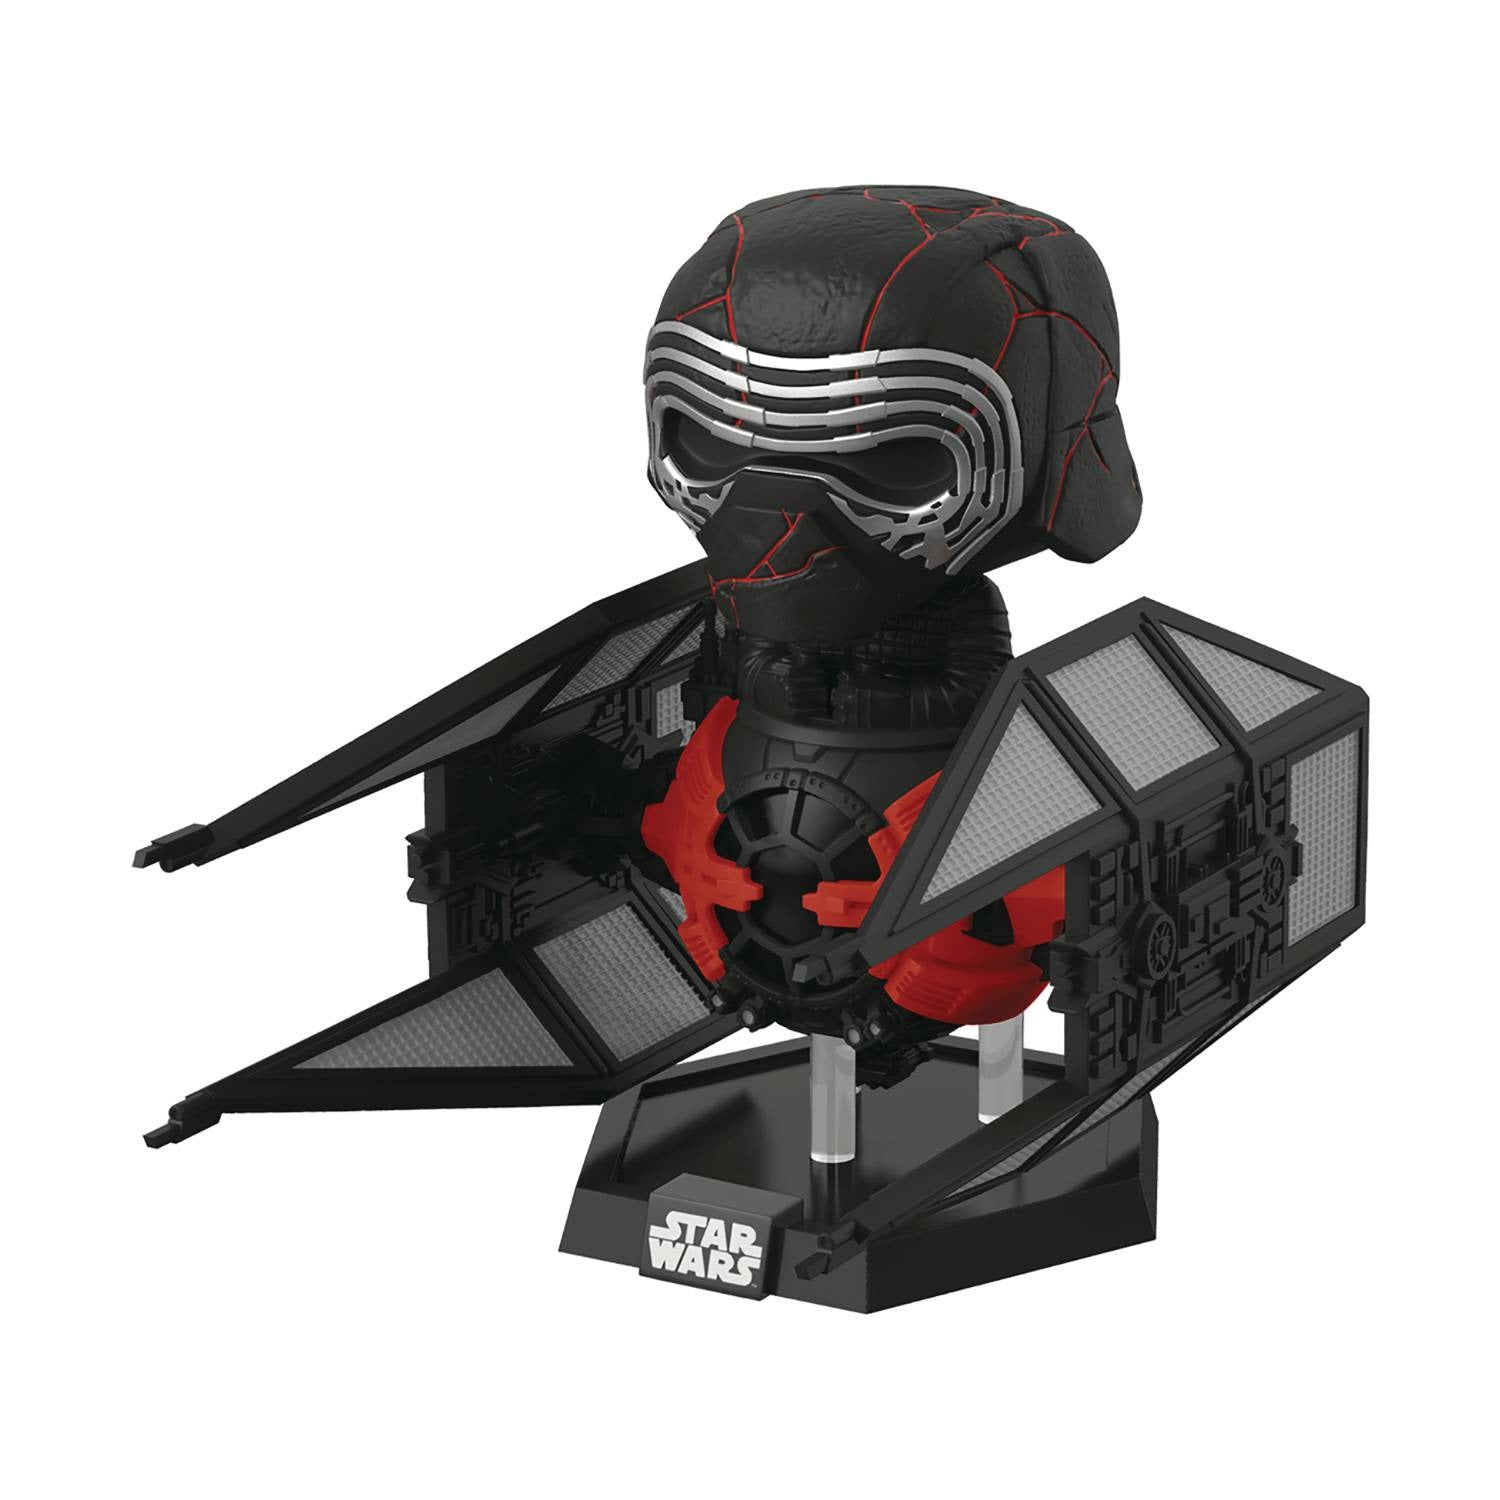 Pop! Rides Star Wars E9 Supreme Leader Kylo Ren Whisper Tie Deluxe Vin